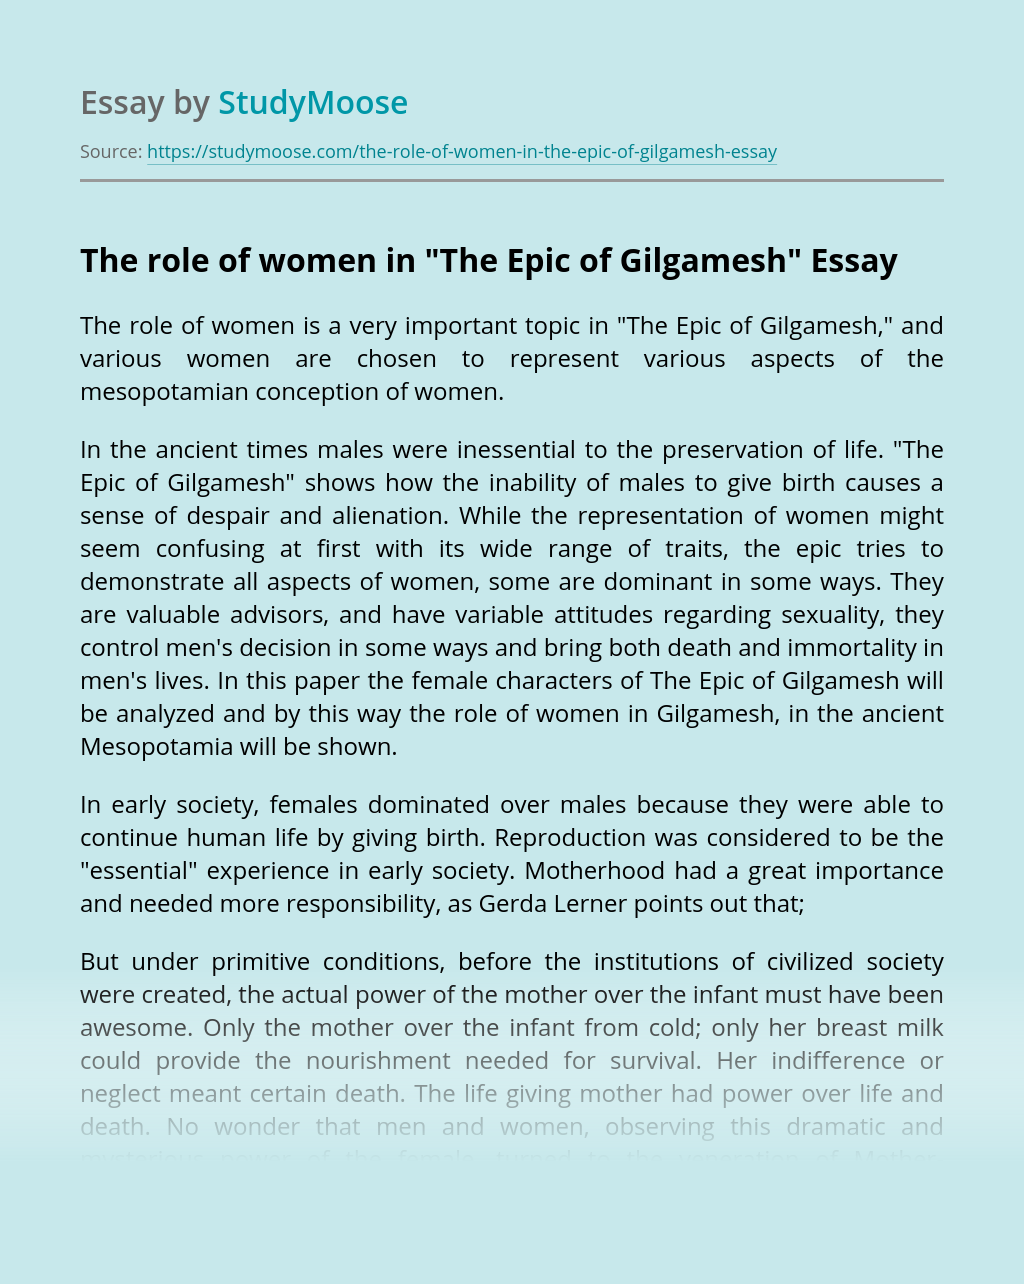 The role of women in